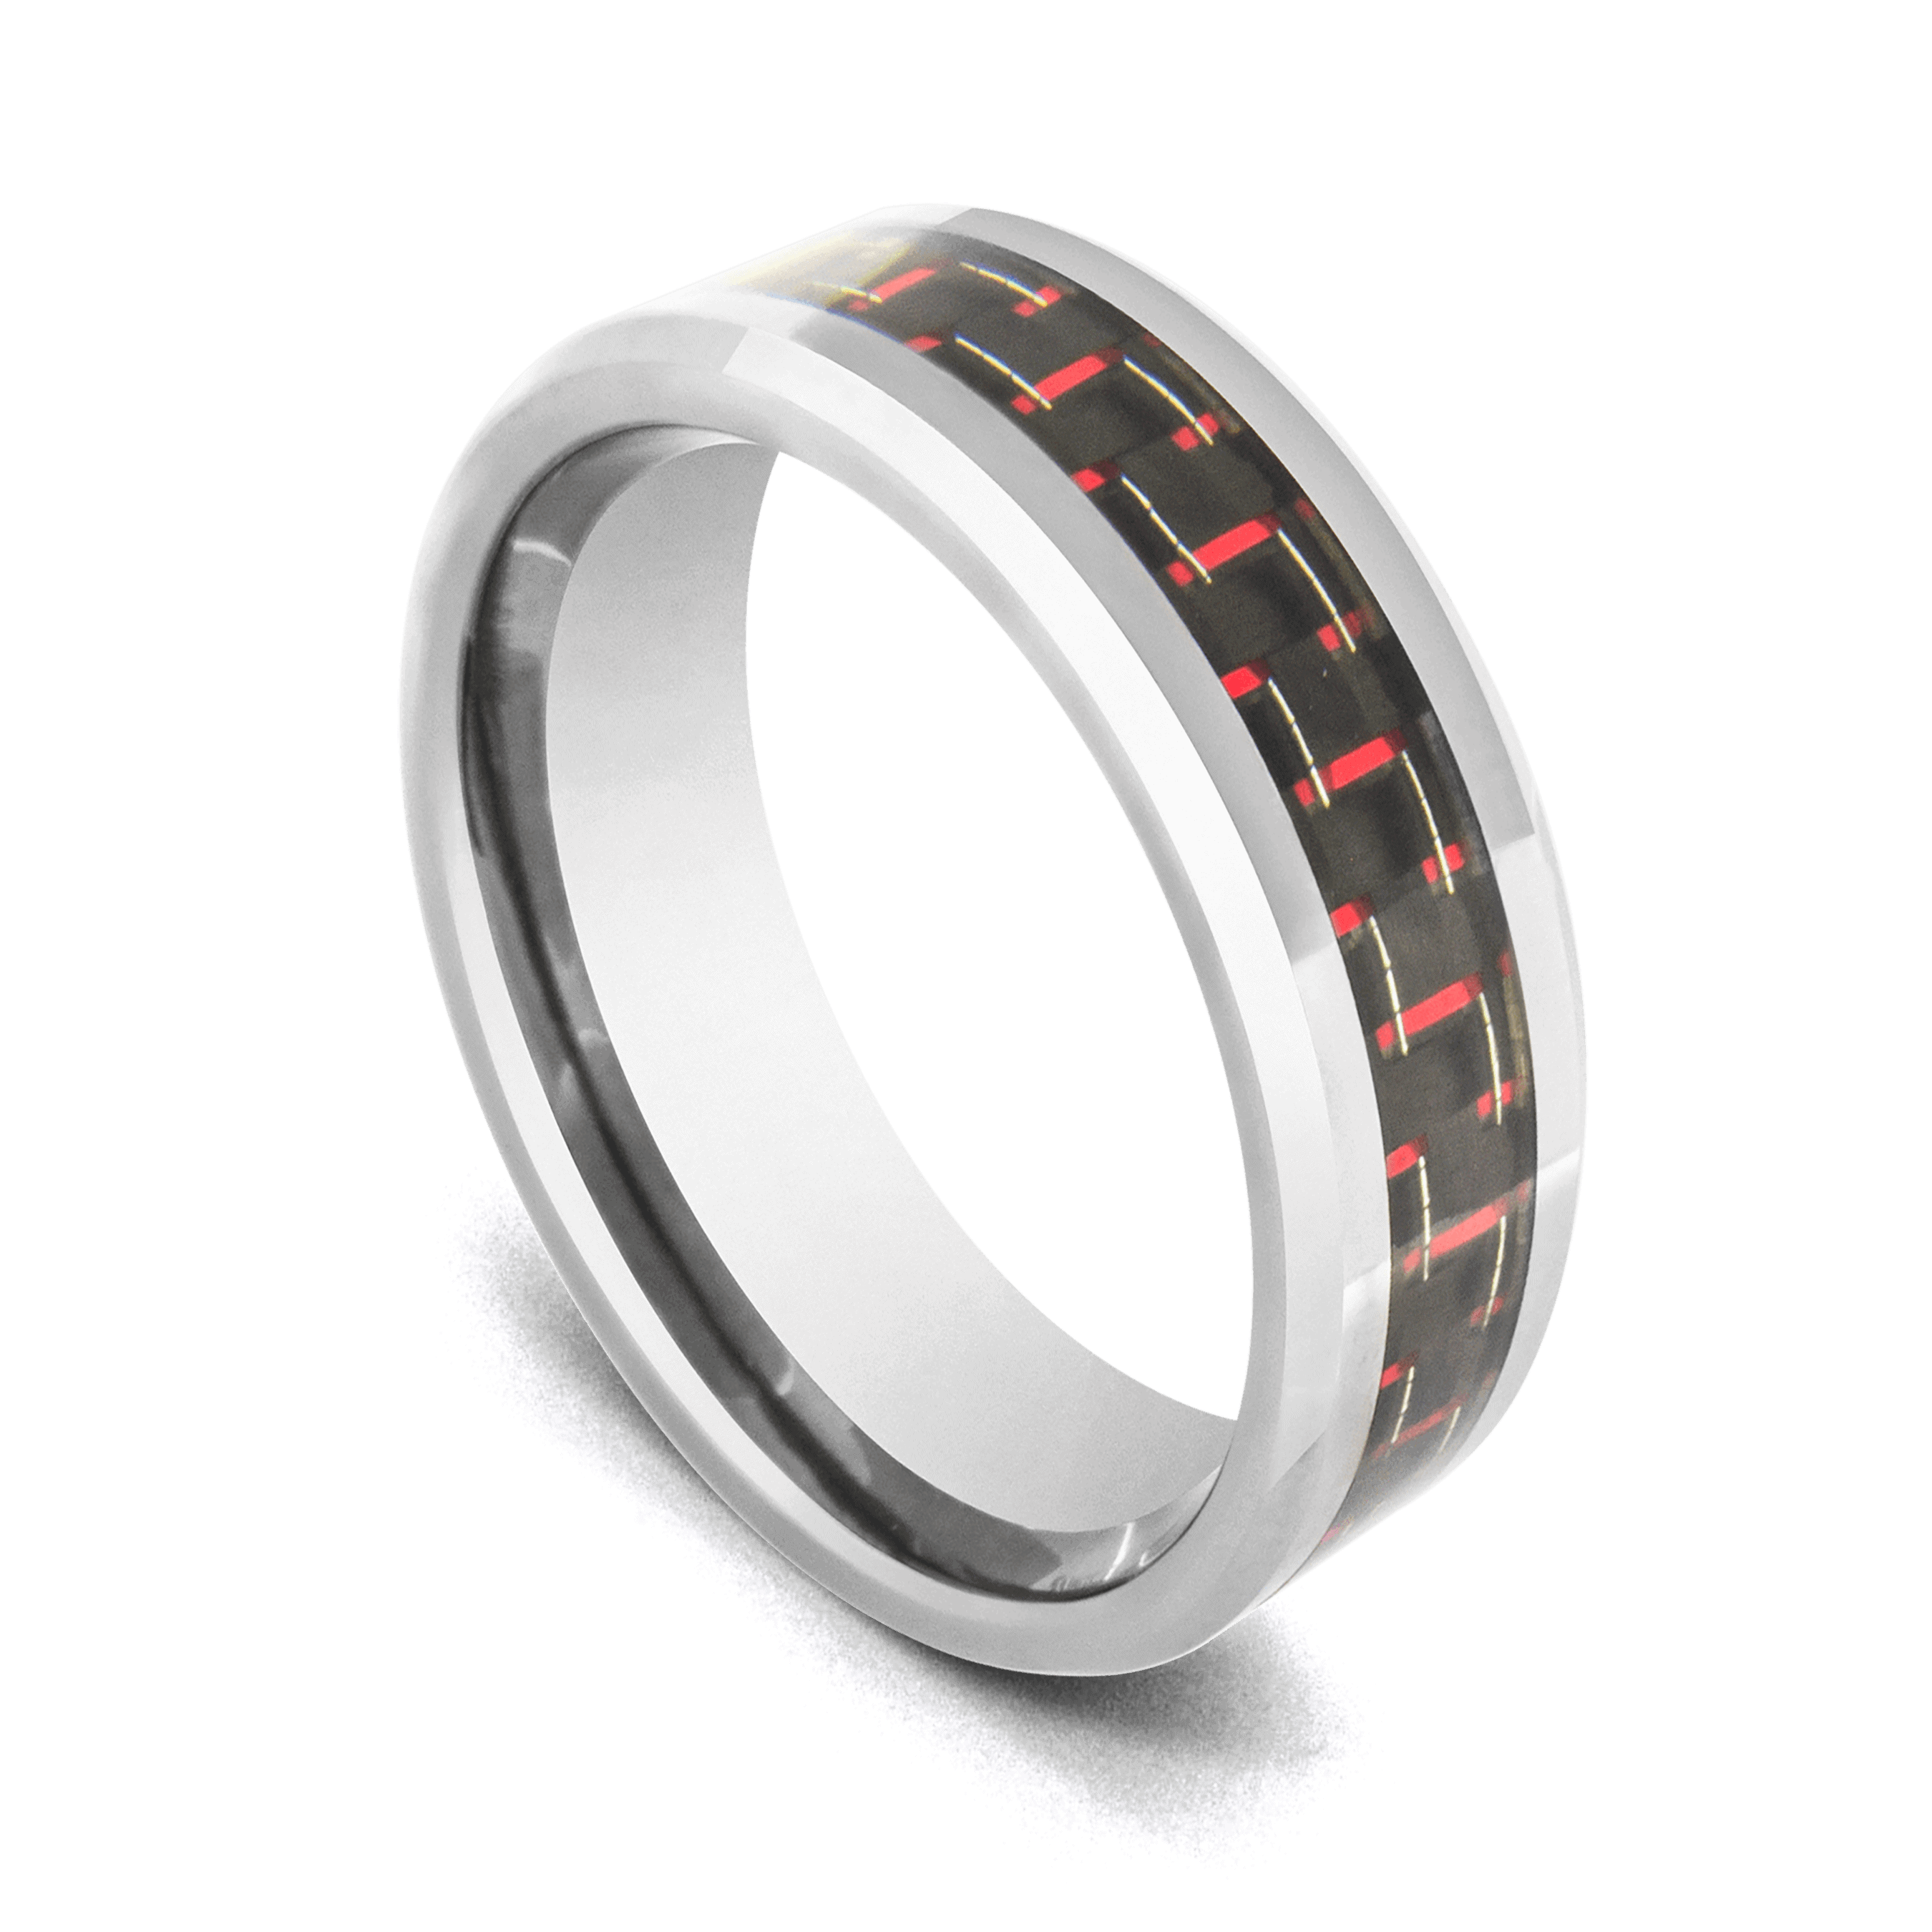 Silver Tungsten Ring for Men with Red and Black Woven Pattern Inlay